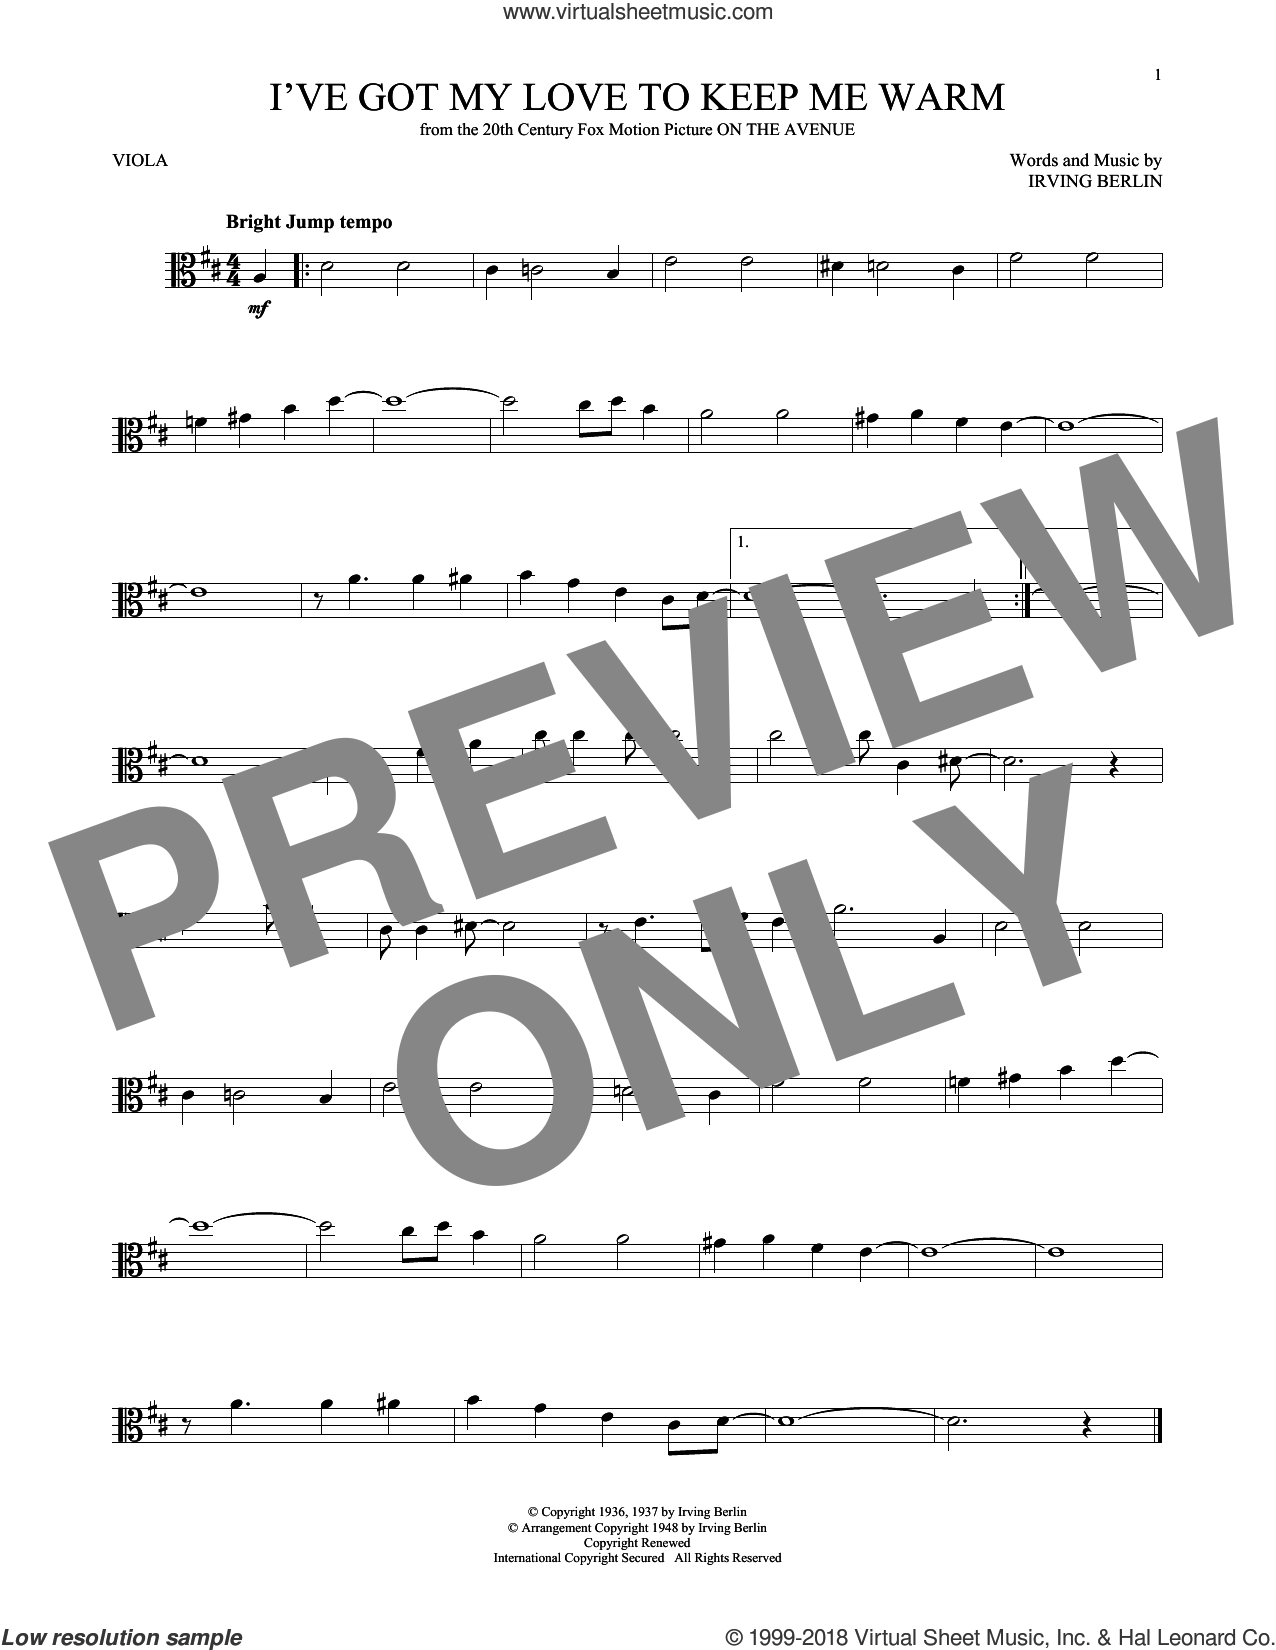 I've Got My Love To Keep Me Warm sheet music for viola solo by Irving Berlin and Benny Goodman, intermediate skill level